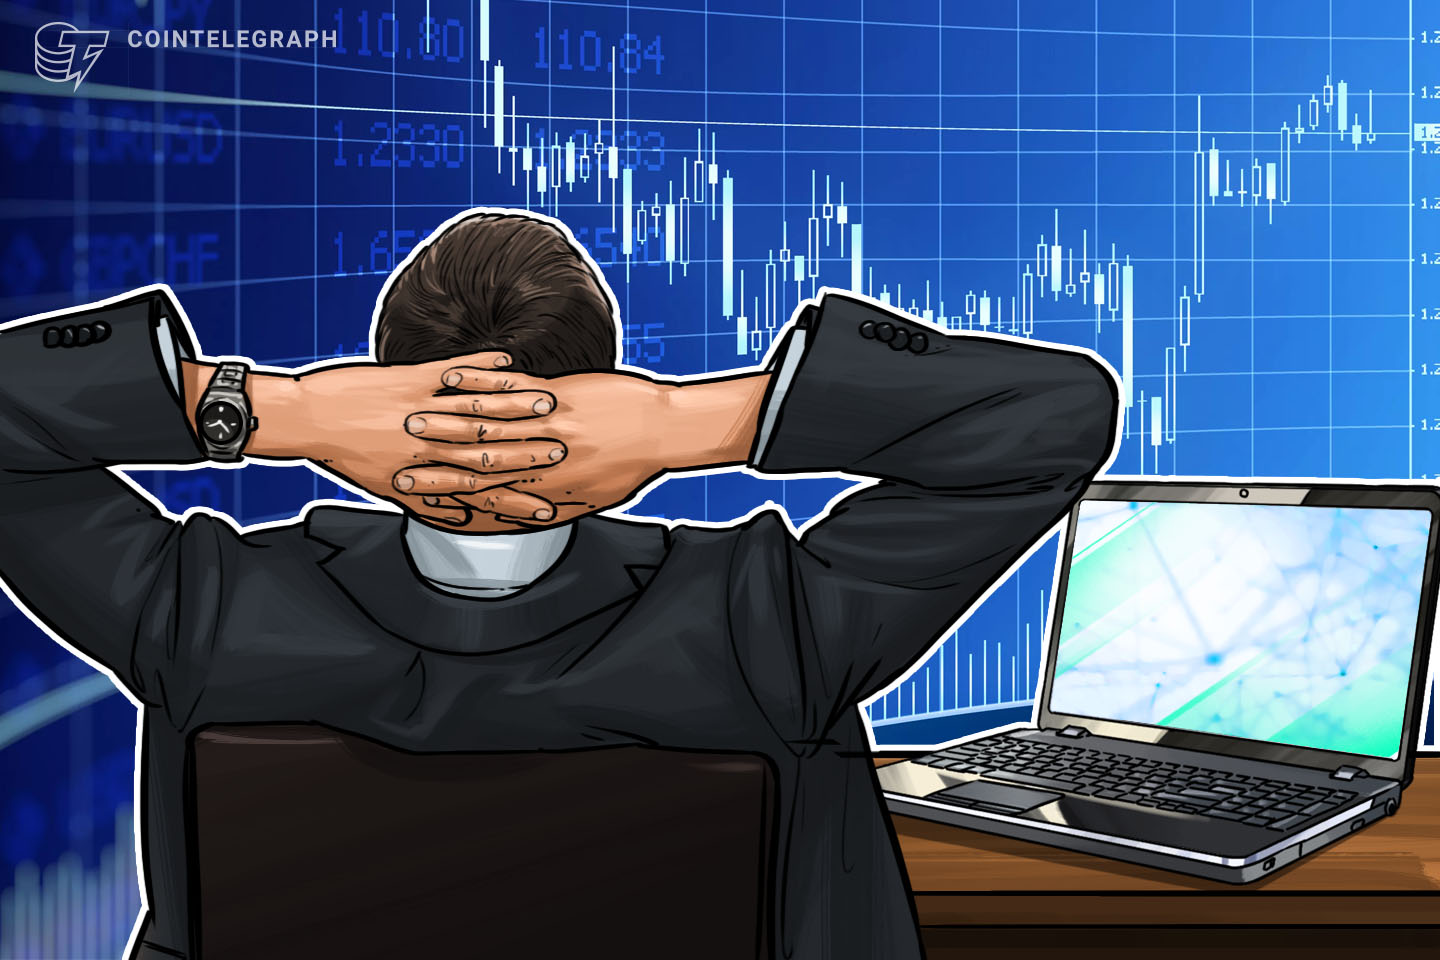 Double-digit crypto gains and trading volume - what's the connection?